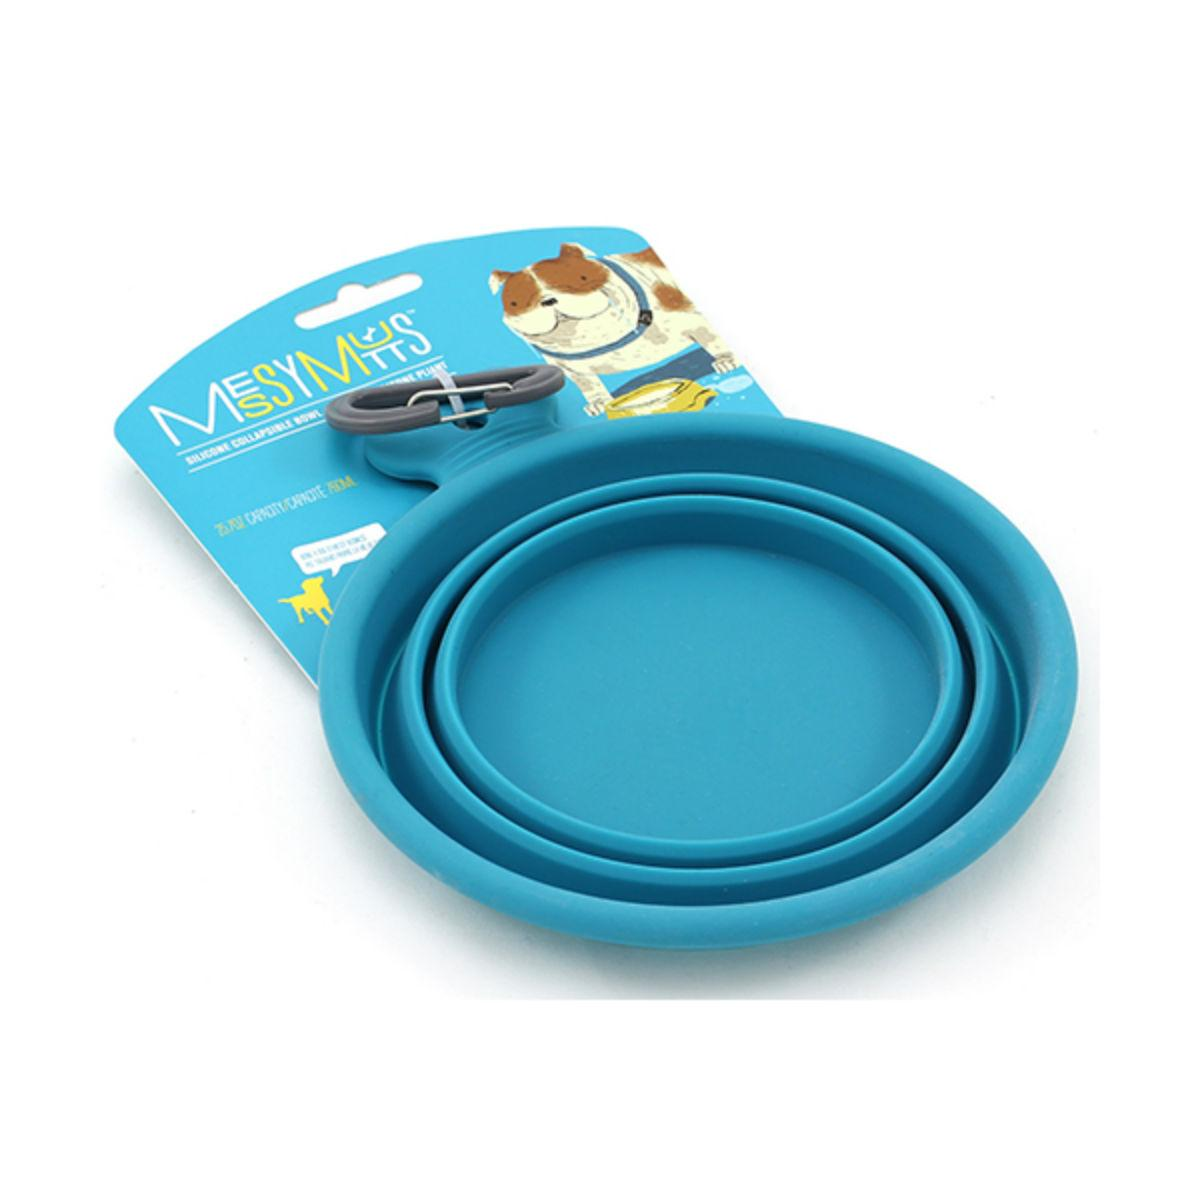 Messy Mutts Collapsible Silicone Dog Bowl - Blue